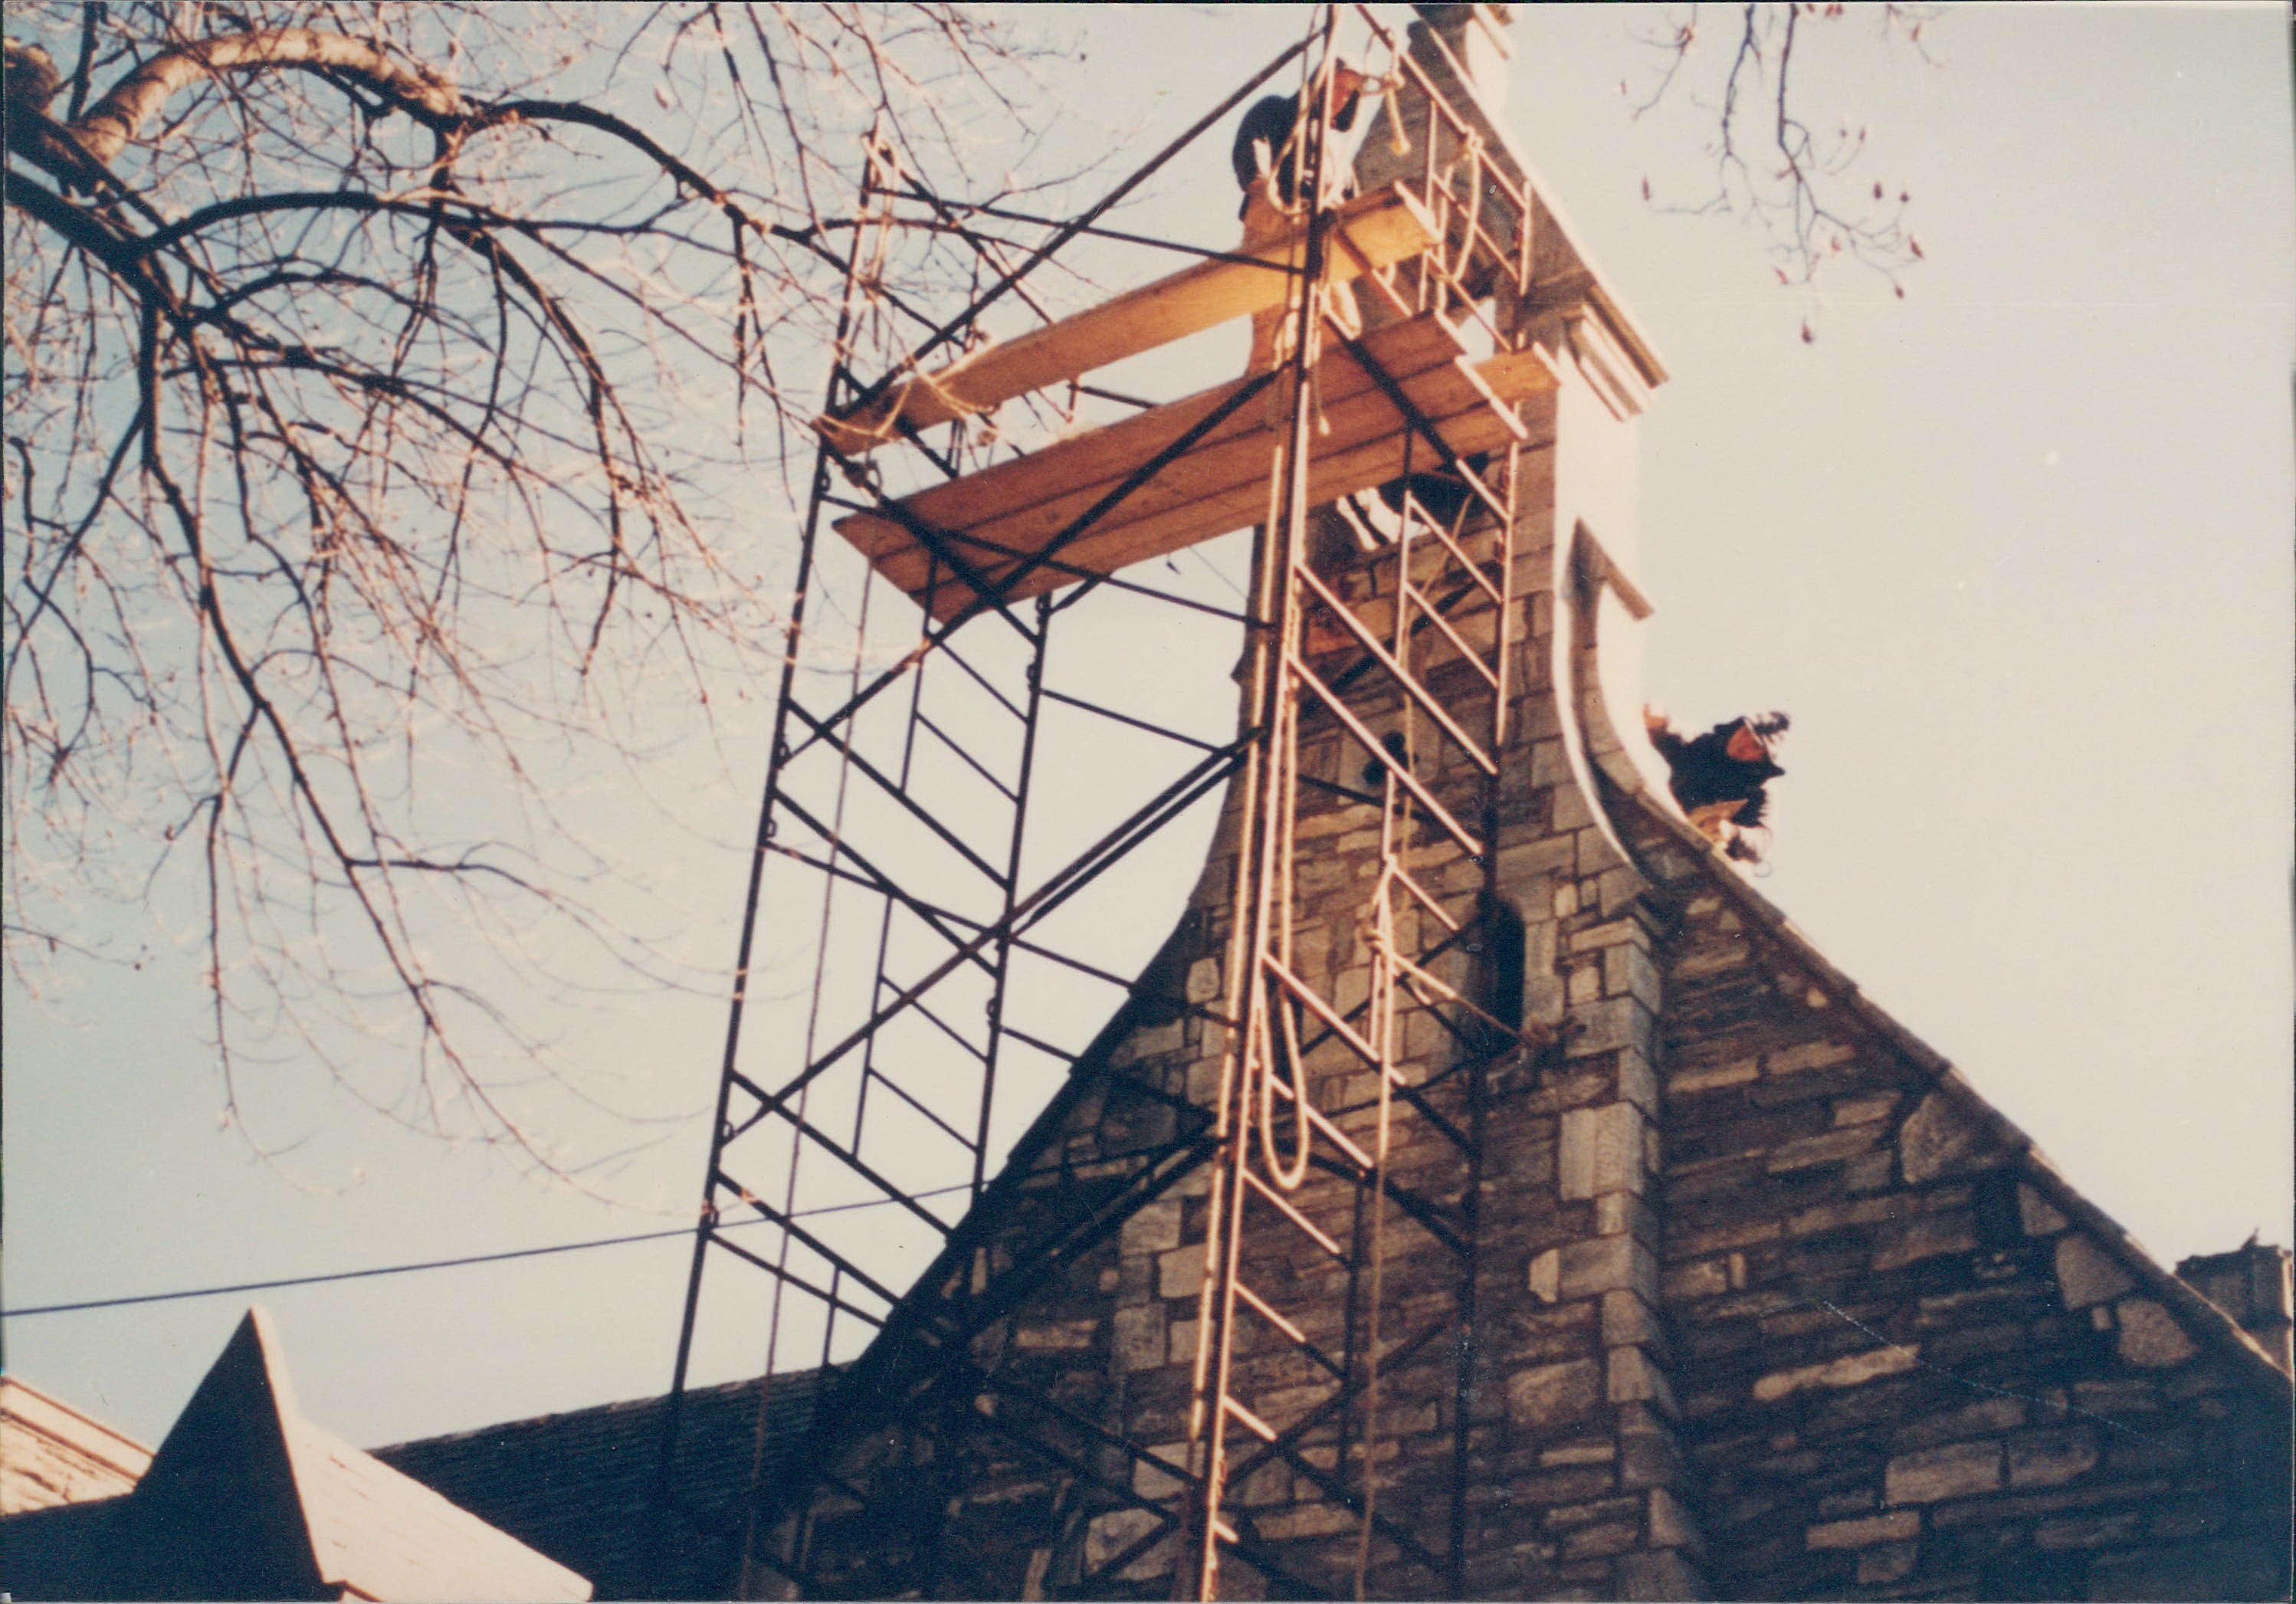 Waggle Chimney Repair Chimney Repair Contractor